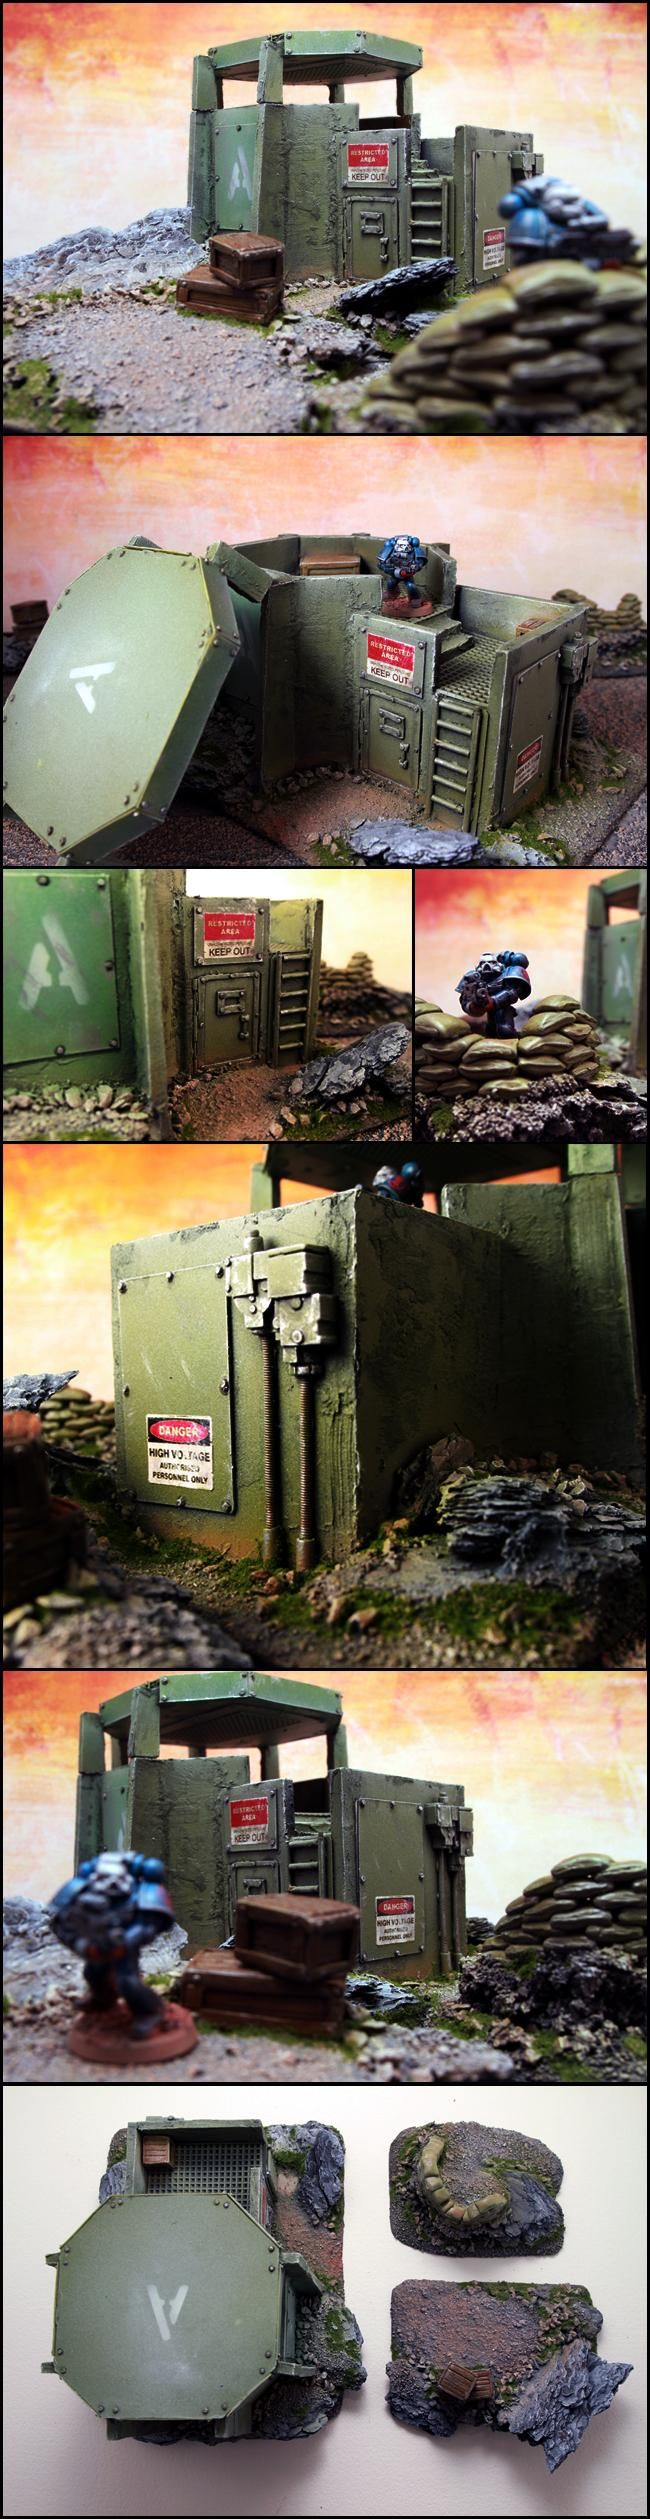 DakkaDakka - Wargaming and Warhammer 40k Forums, Articles and Gallery - Homepage | No assembly required.